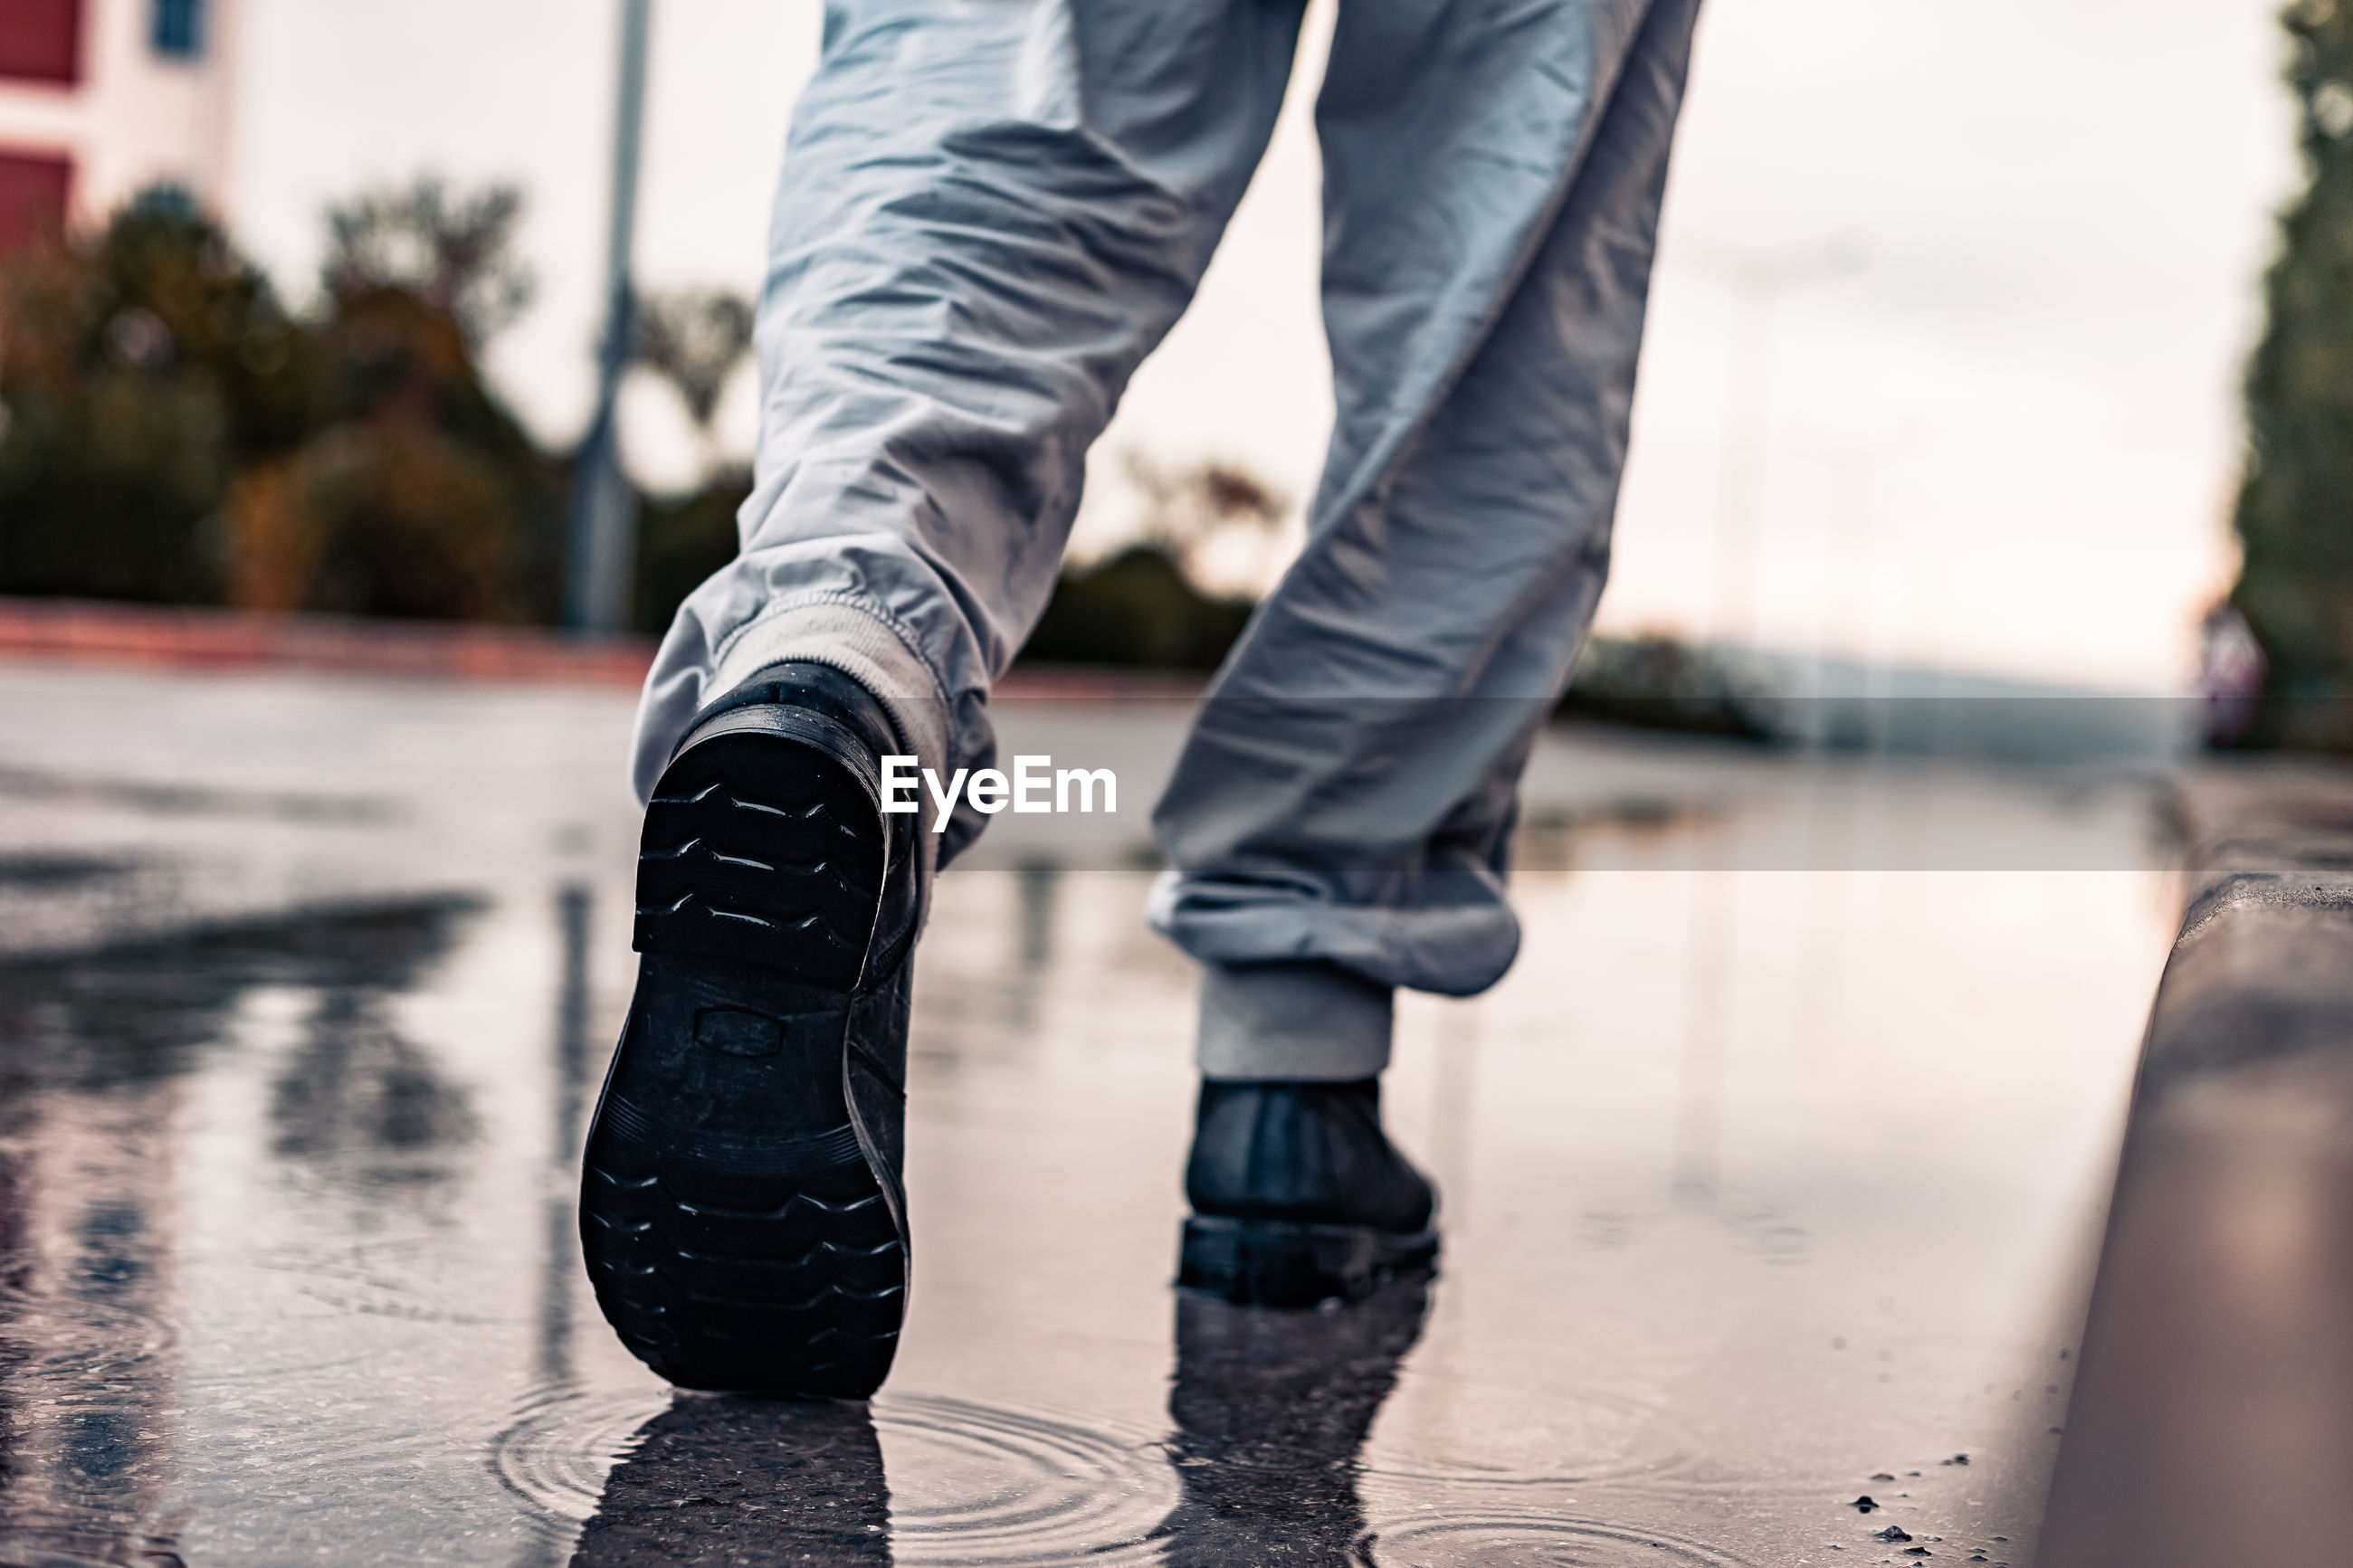 Low section of man walking on wet road during rainy season